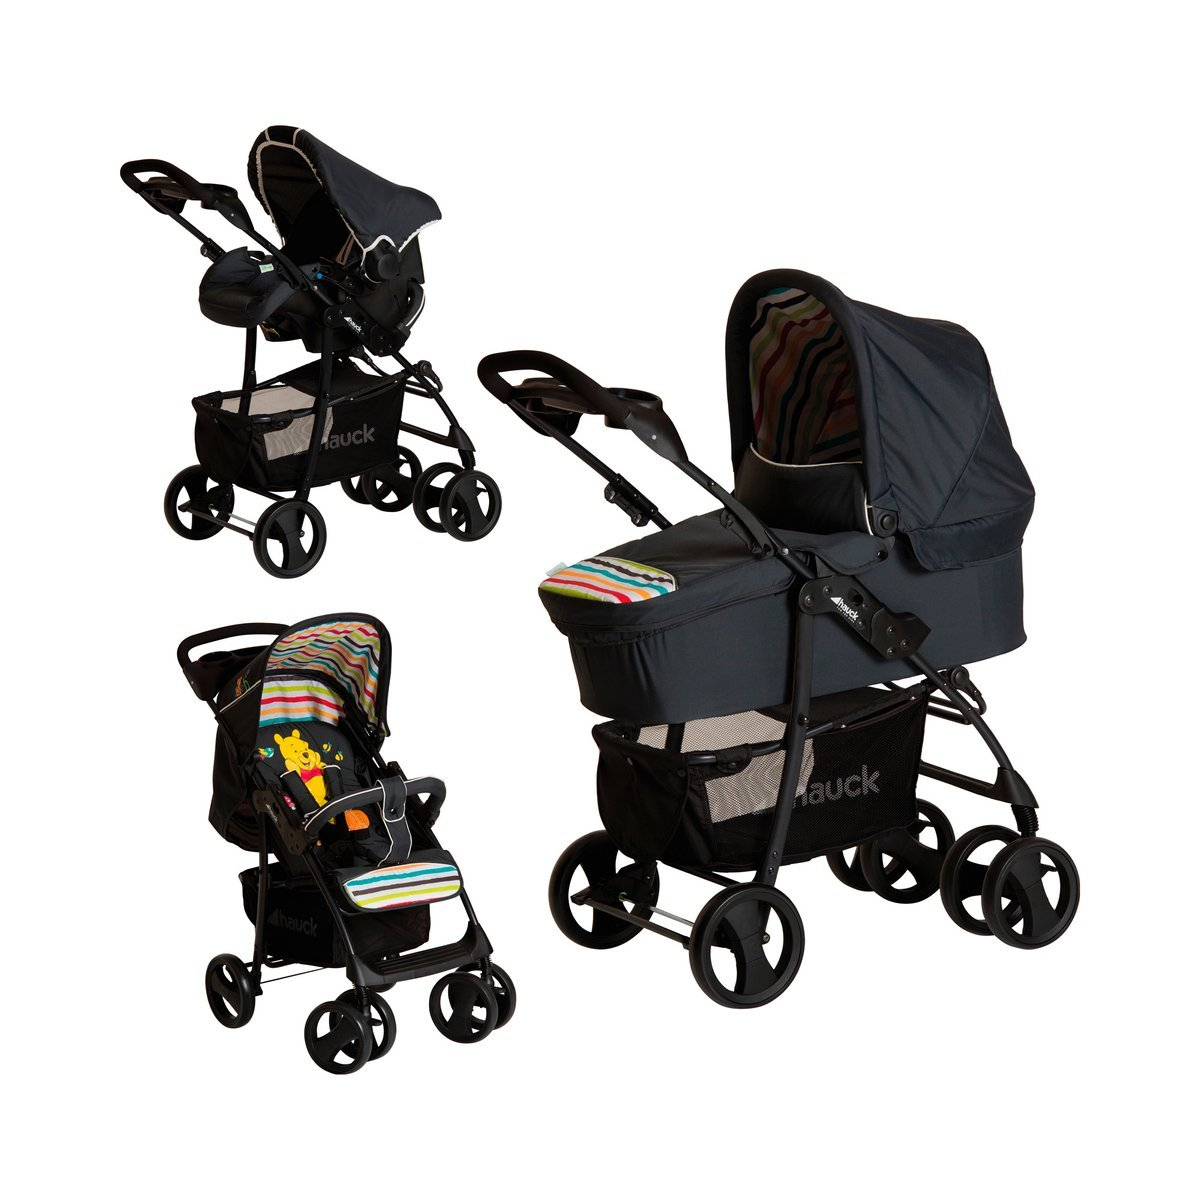 hauck 3 in kinderwagen komplettset shopper slx trio set inkl babyliegeschale kinderautositz. Black Bedroom Furniture Sets. Home Design Ideas